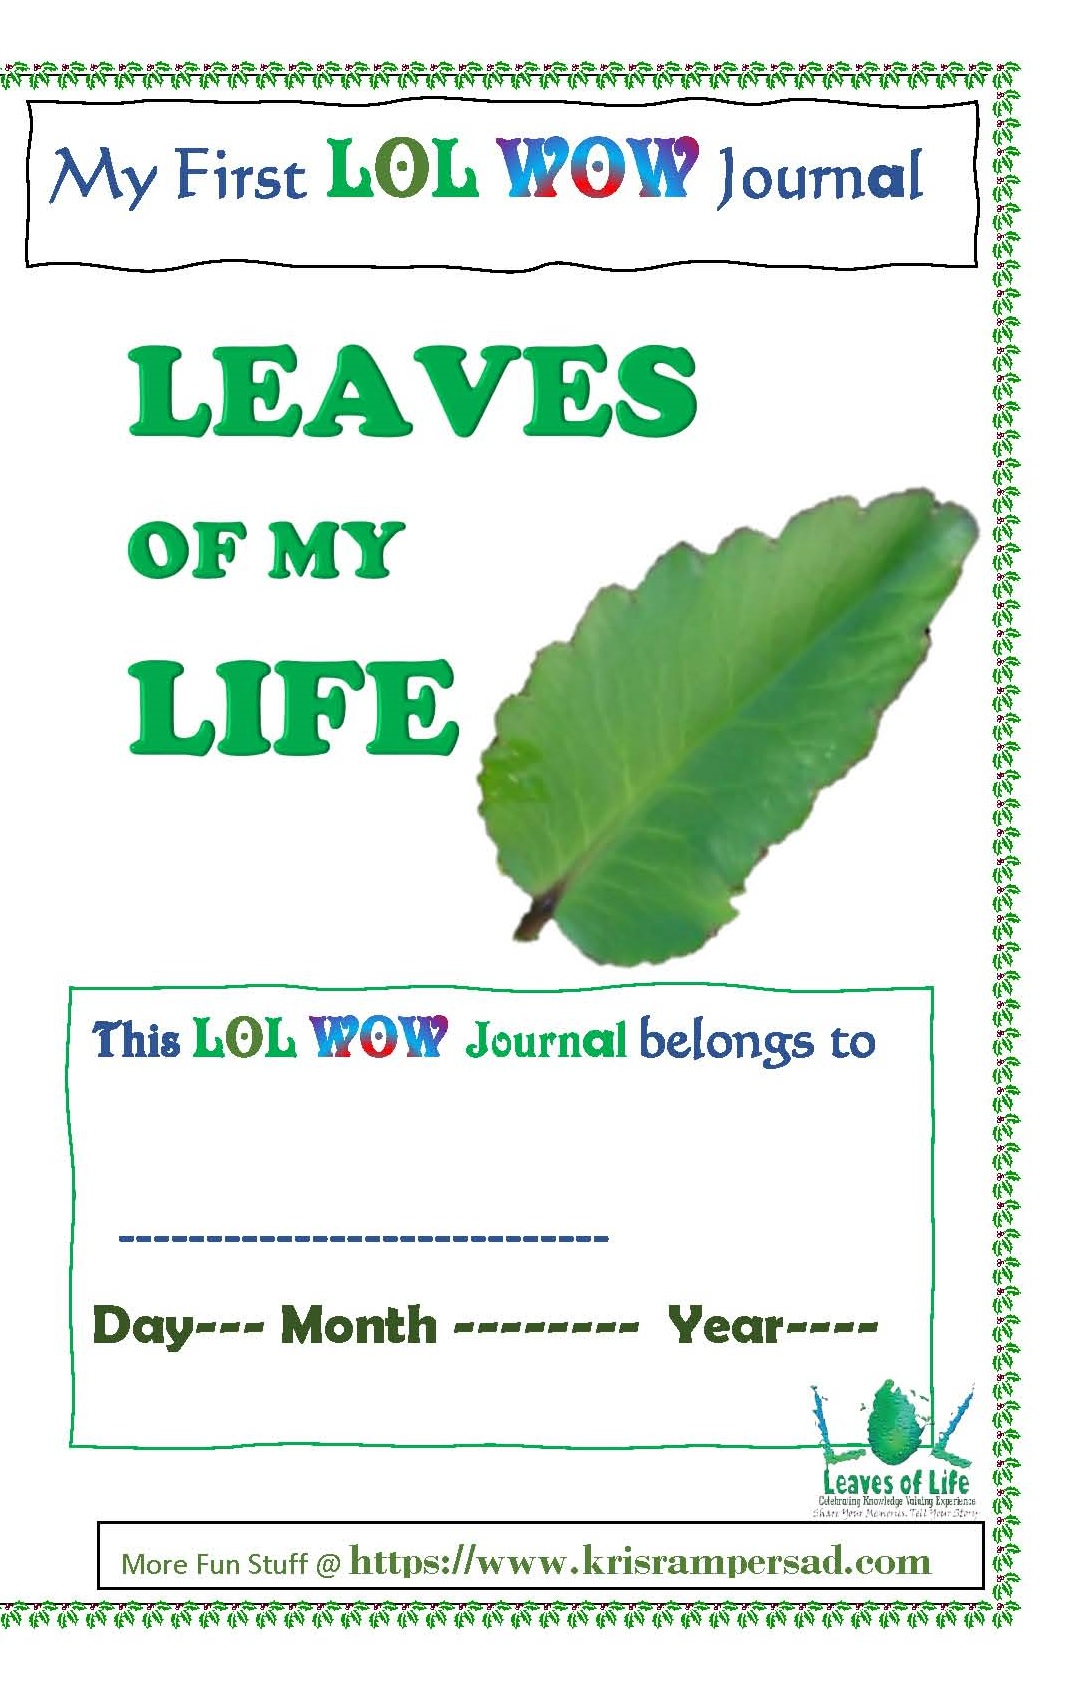 My First LOL WOW Journal Cover option Leaves of Life